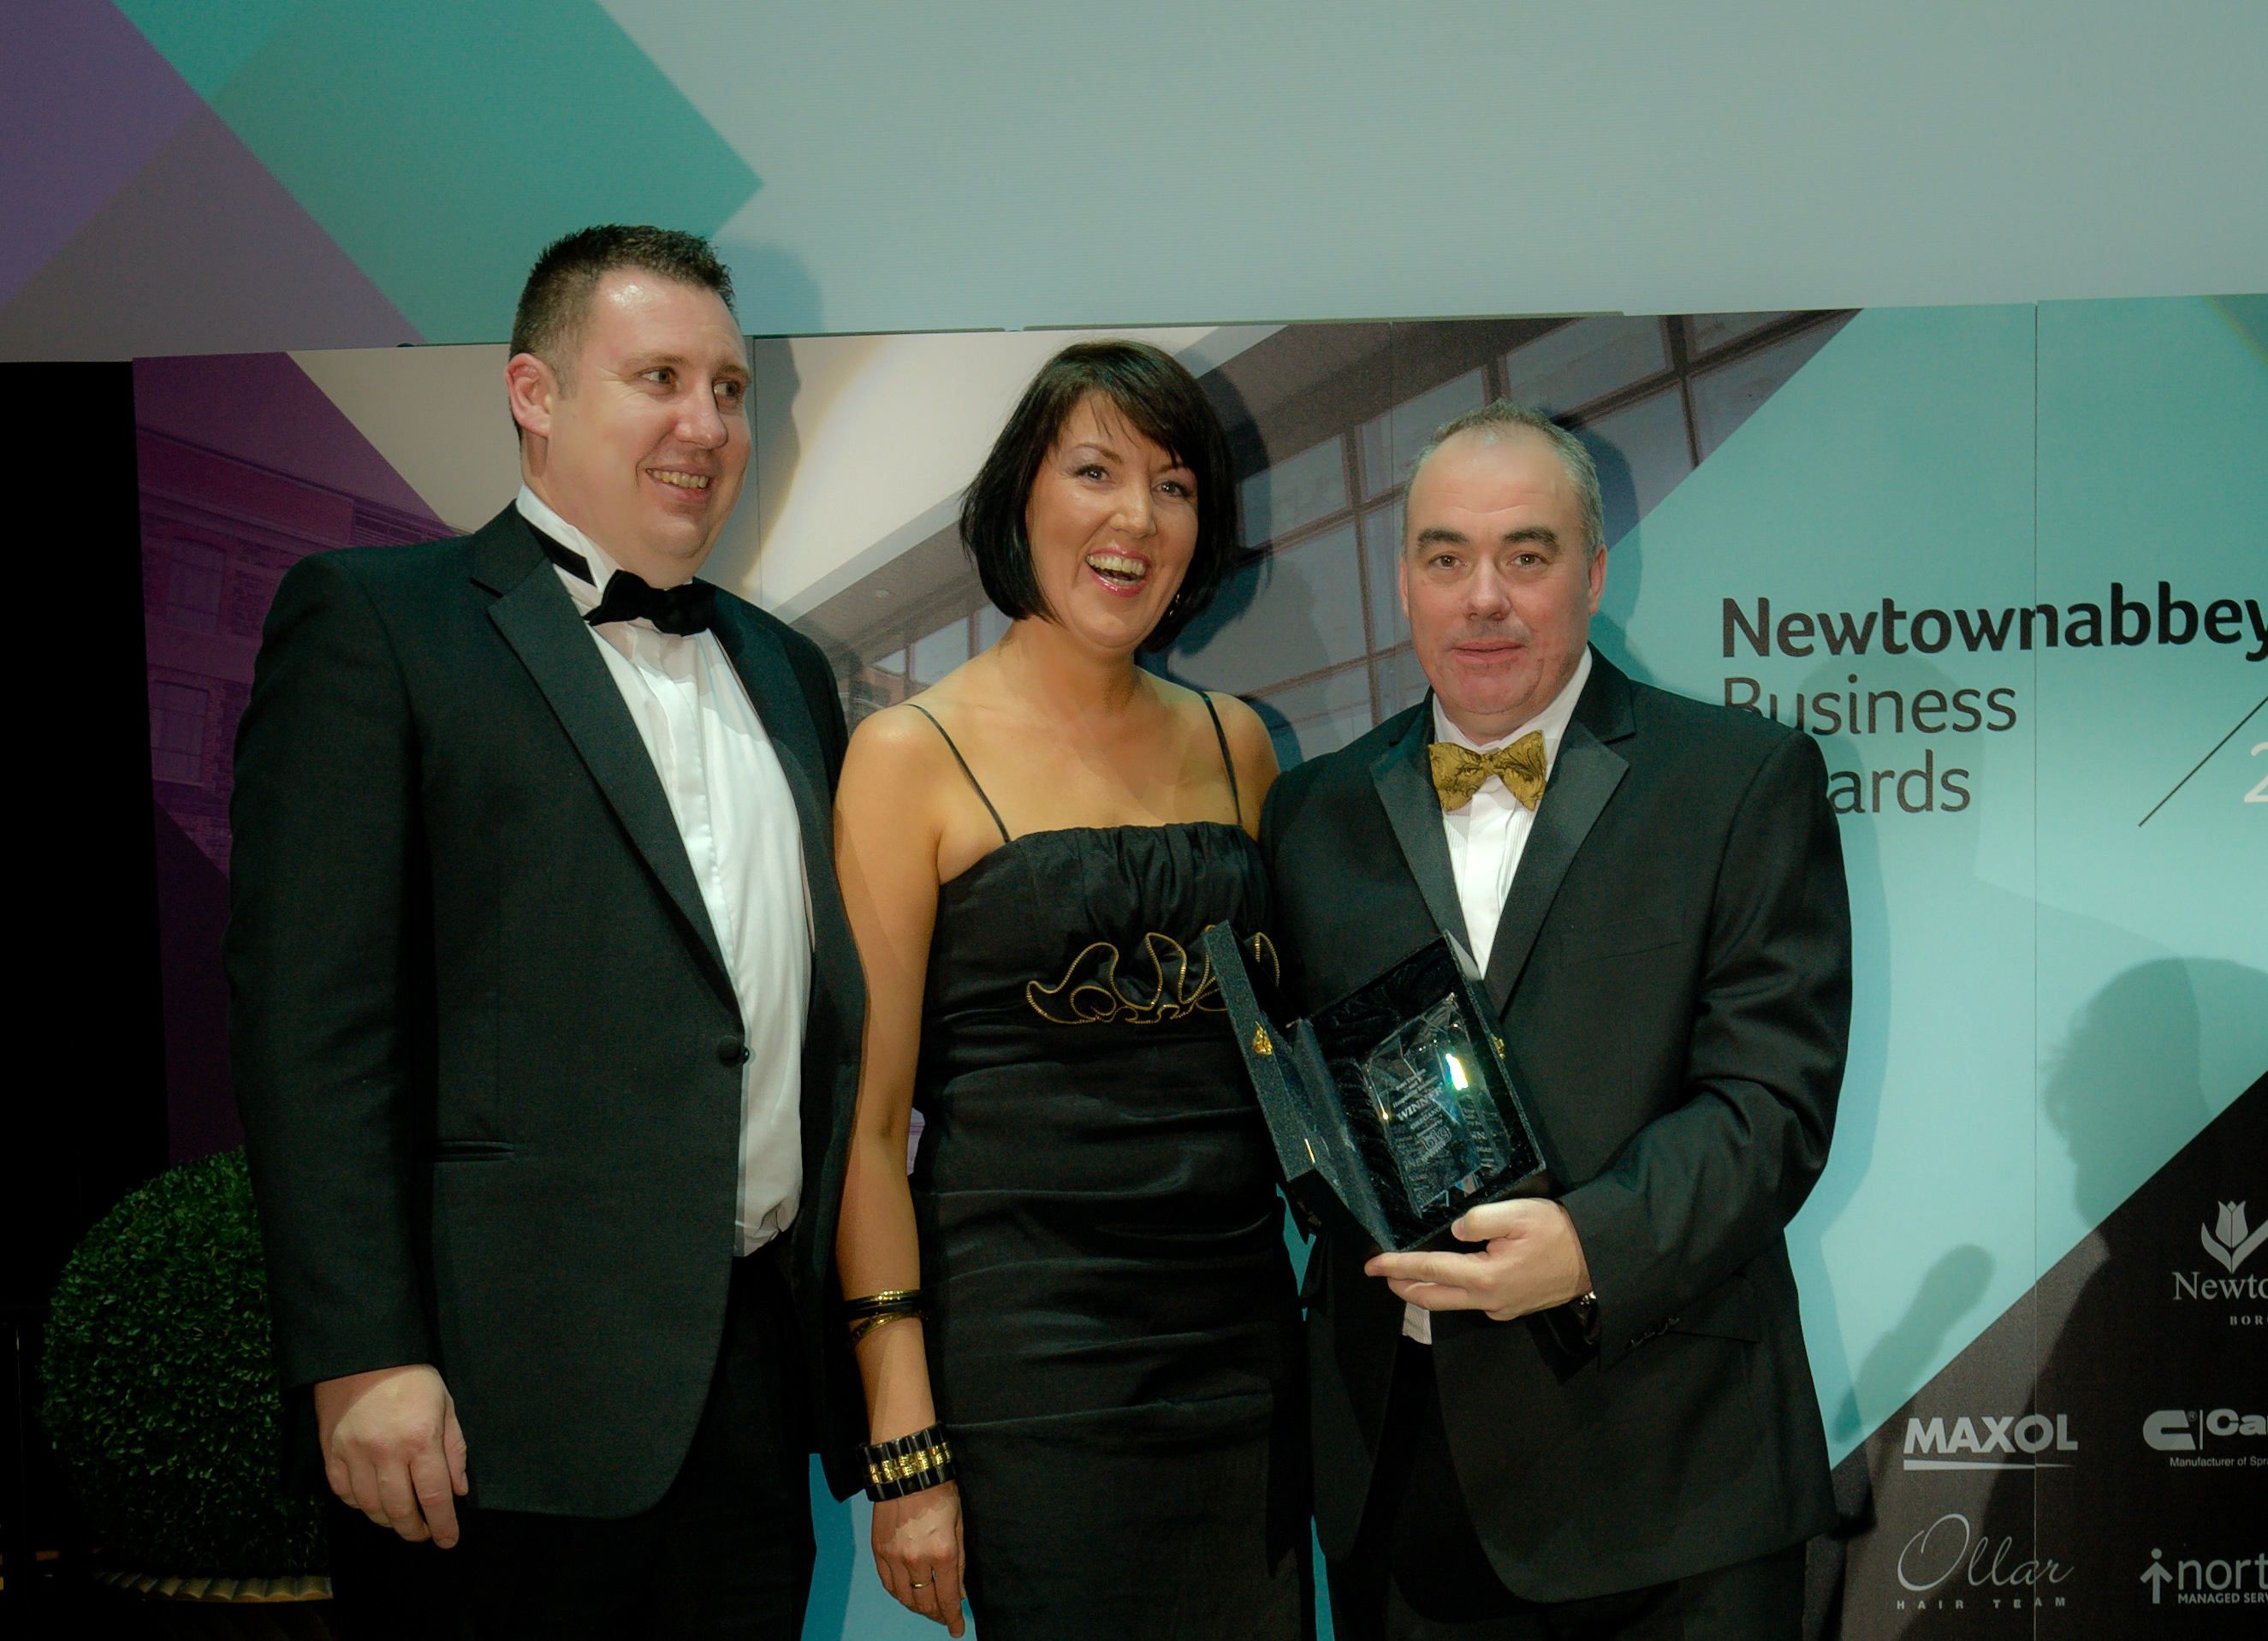 Business awards celebrate the best of Newtownabbey